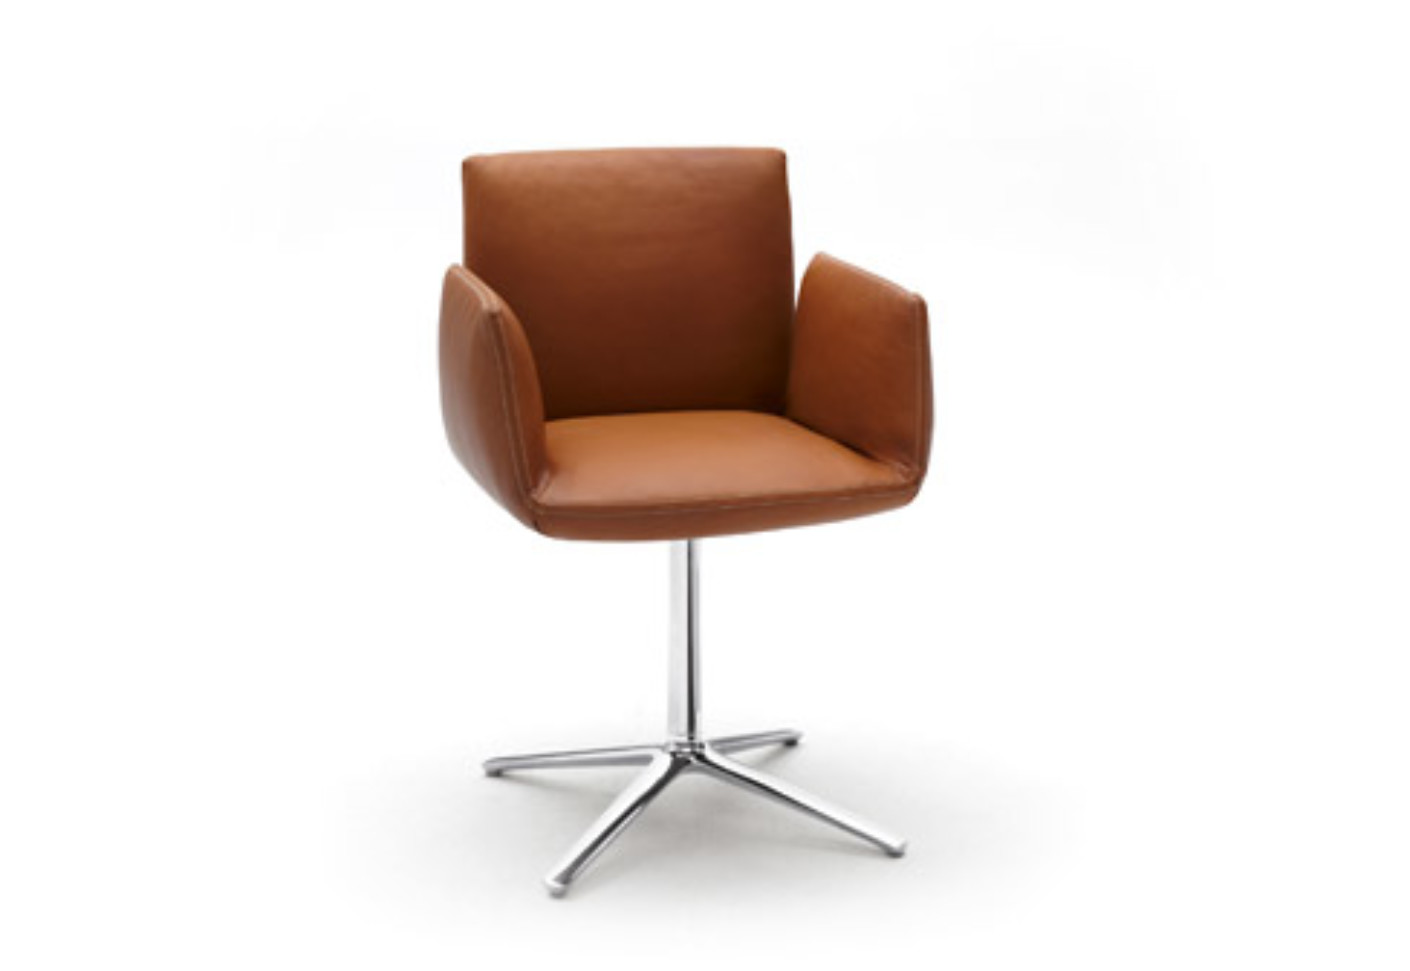 revolving chair supplier lenox christmas covers jalis drehstuhl von cor stylepark